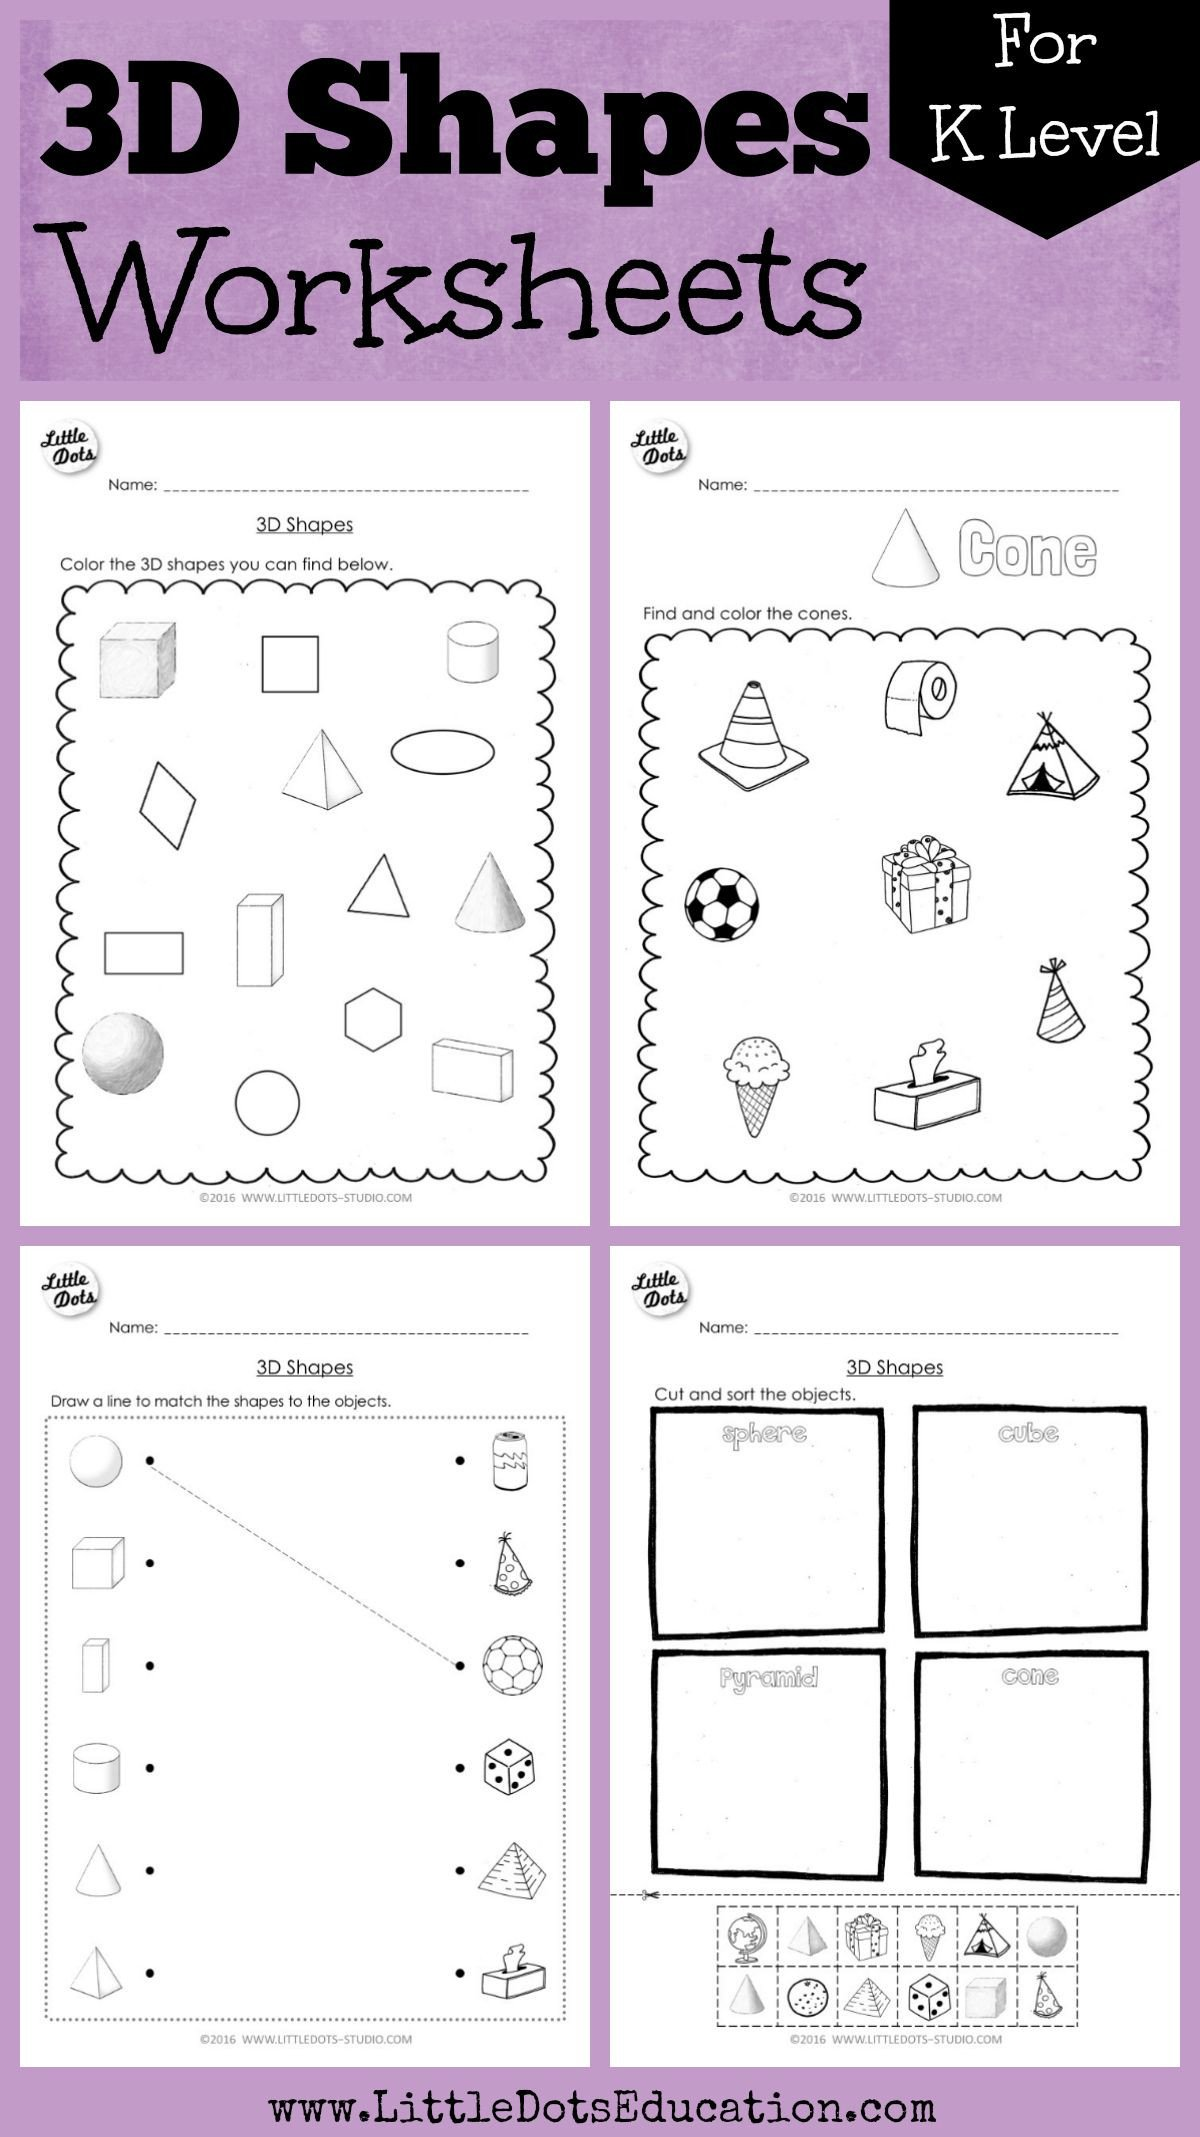 Kindergarten 3d Shapes Worksheets Kindergarten Math 3d Shapes Worksheets and Activities